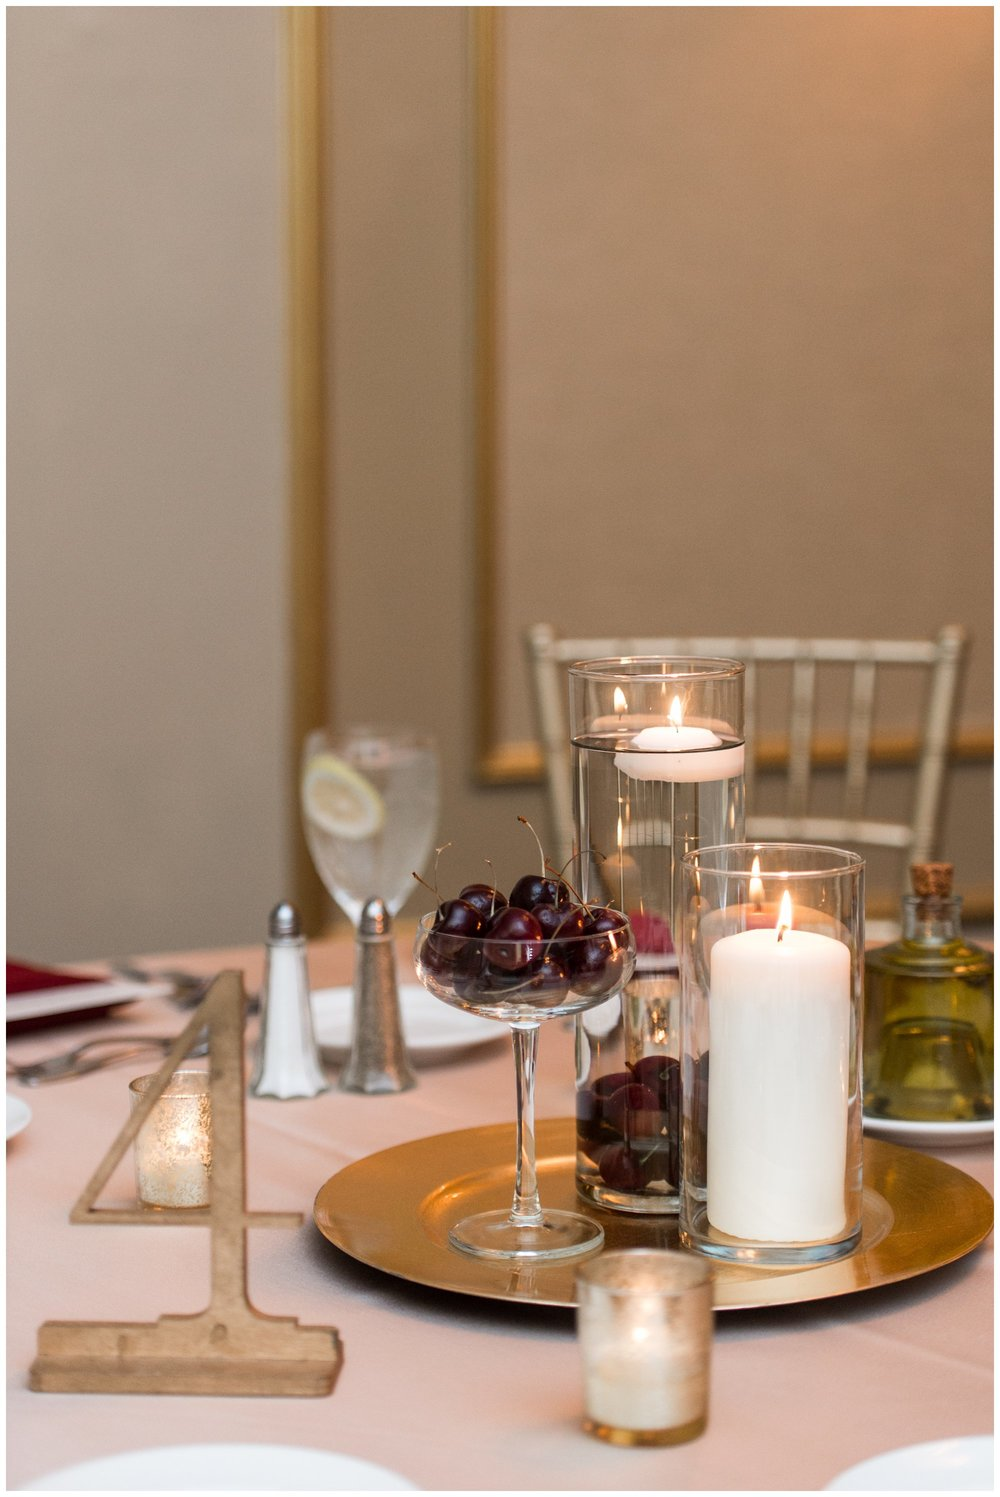 Lenox Hotel Boston Wedding reception centerpieces with gold, cream, and burgundy, candles and cherries